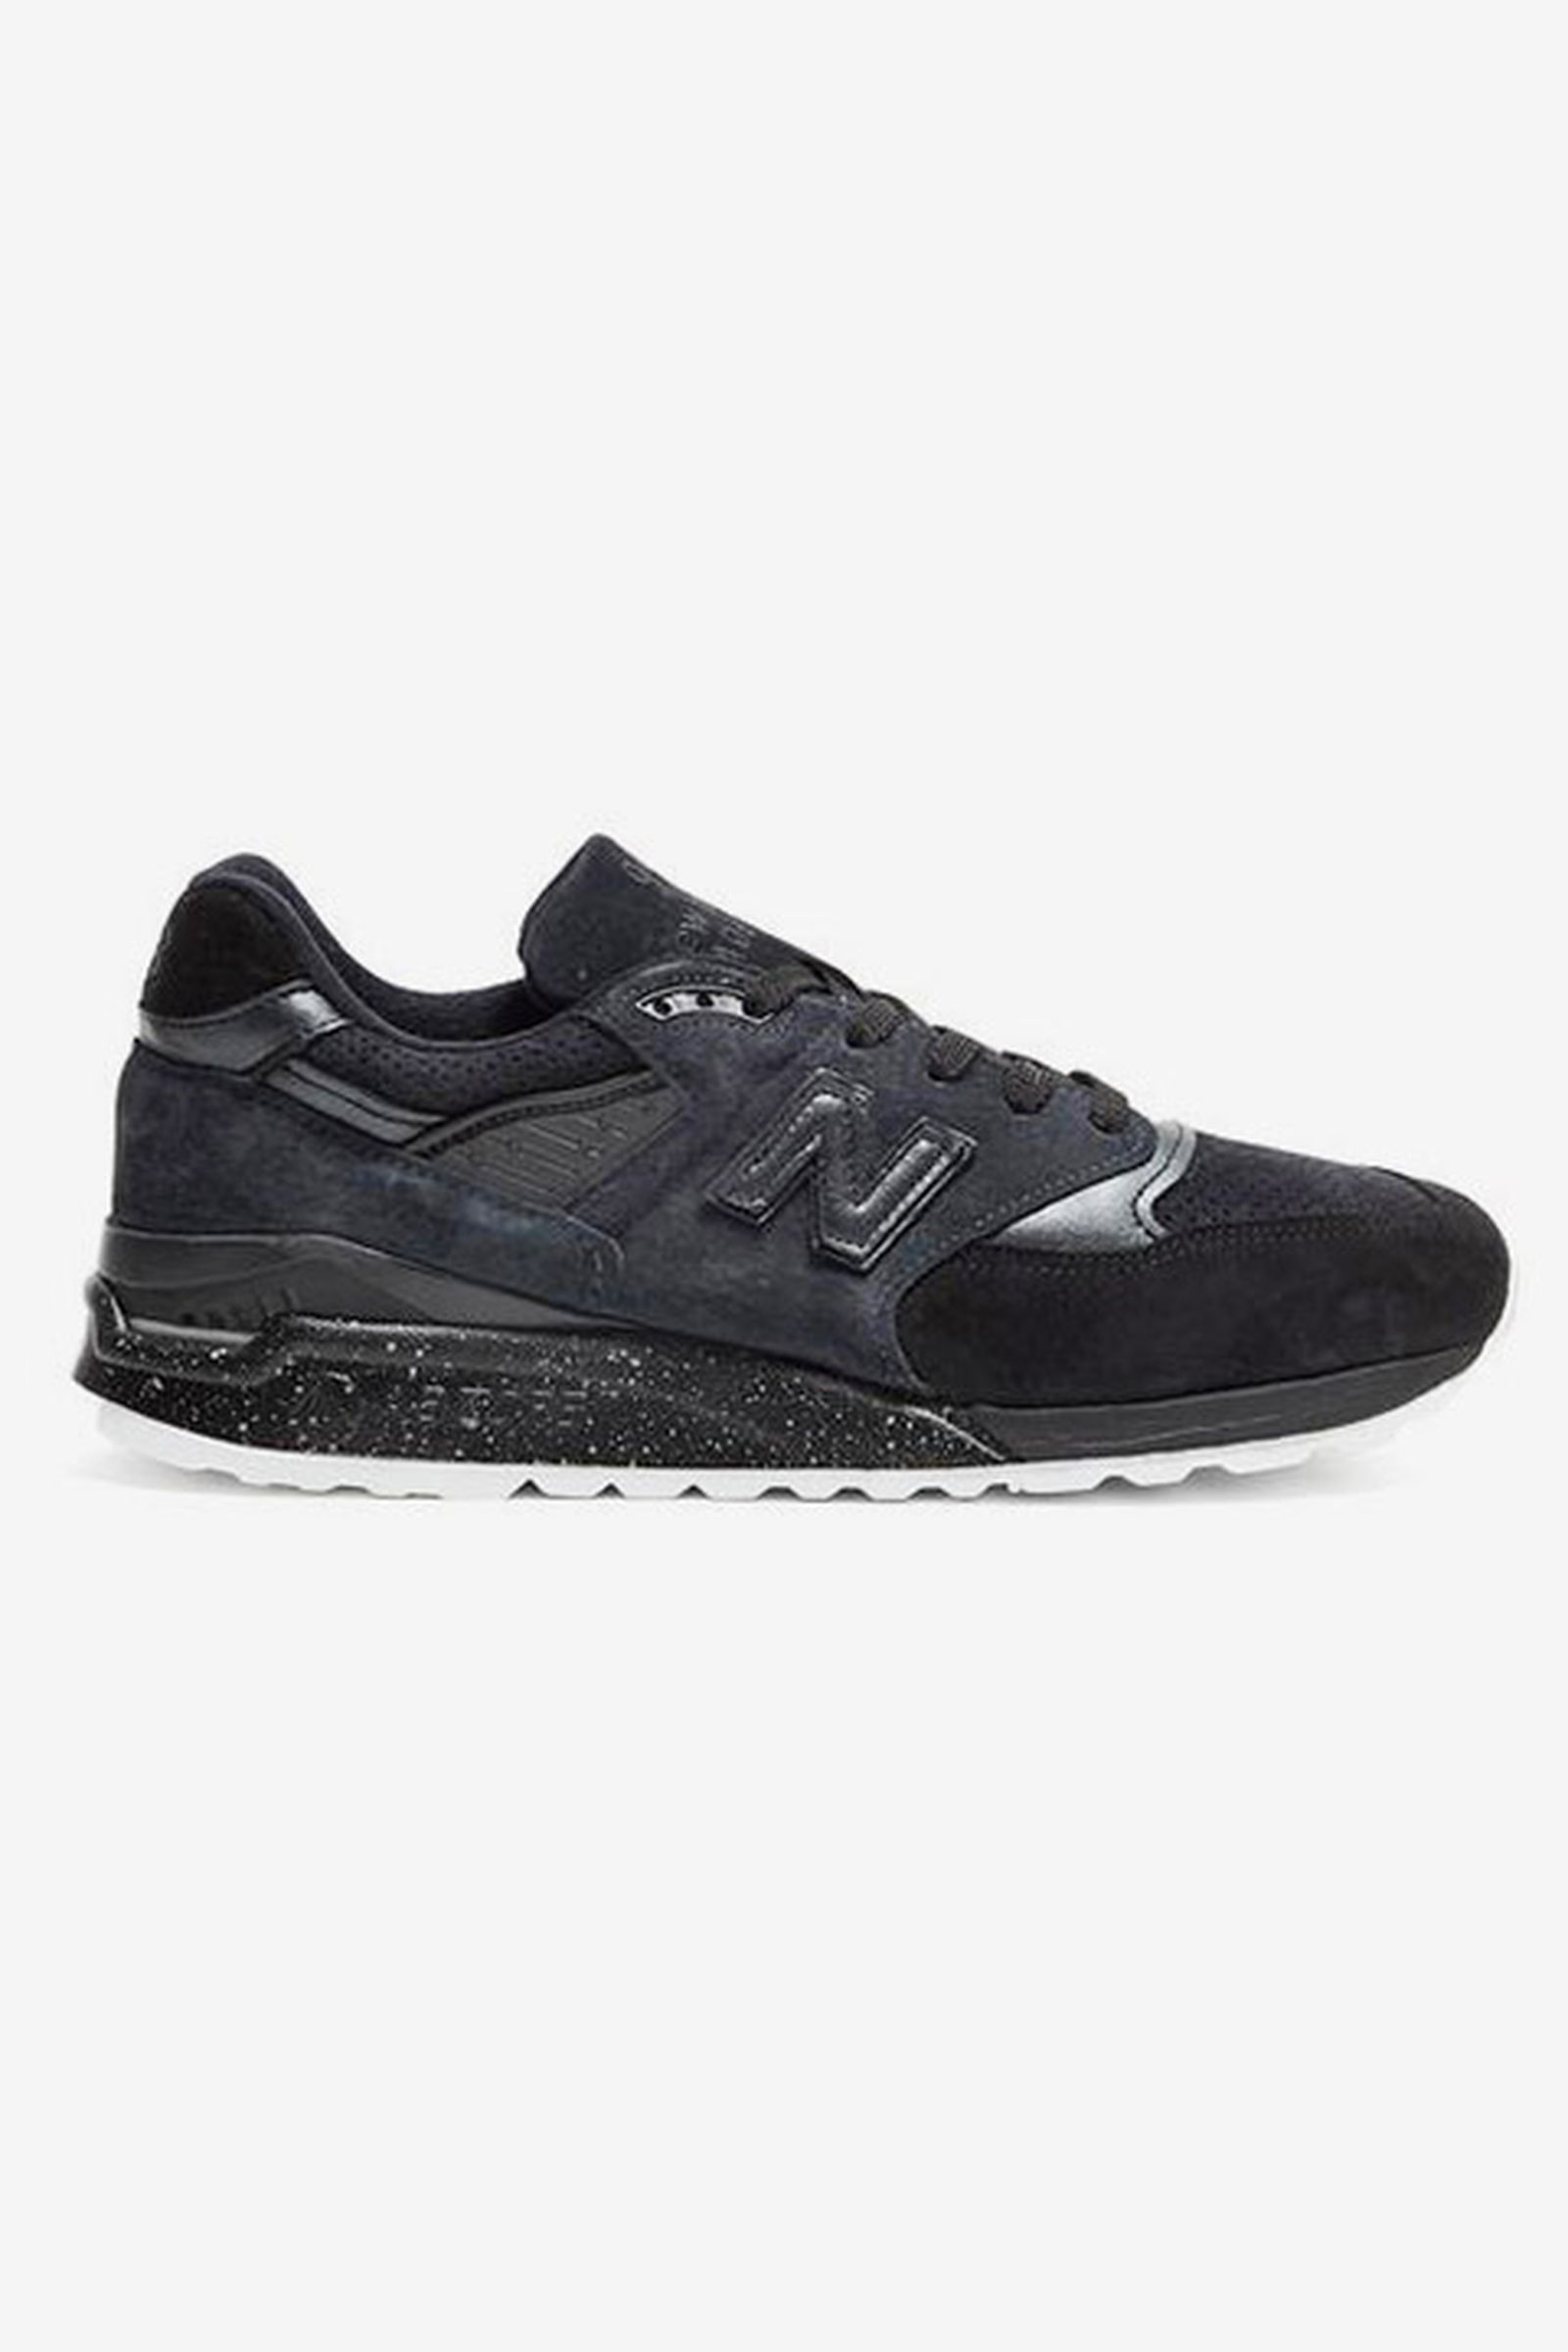 todd snyder new balance 998 release date price NB998